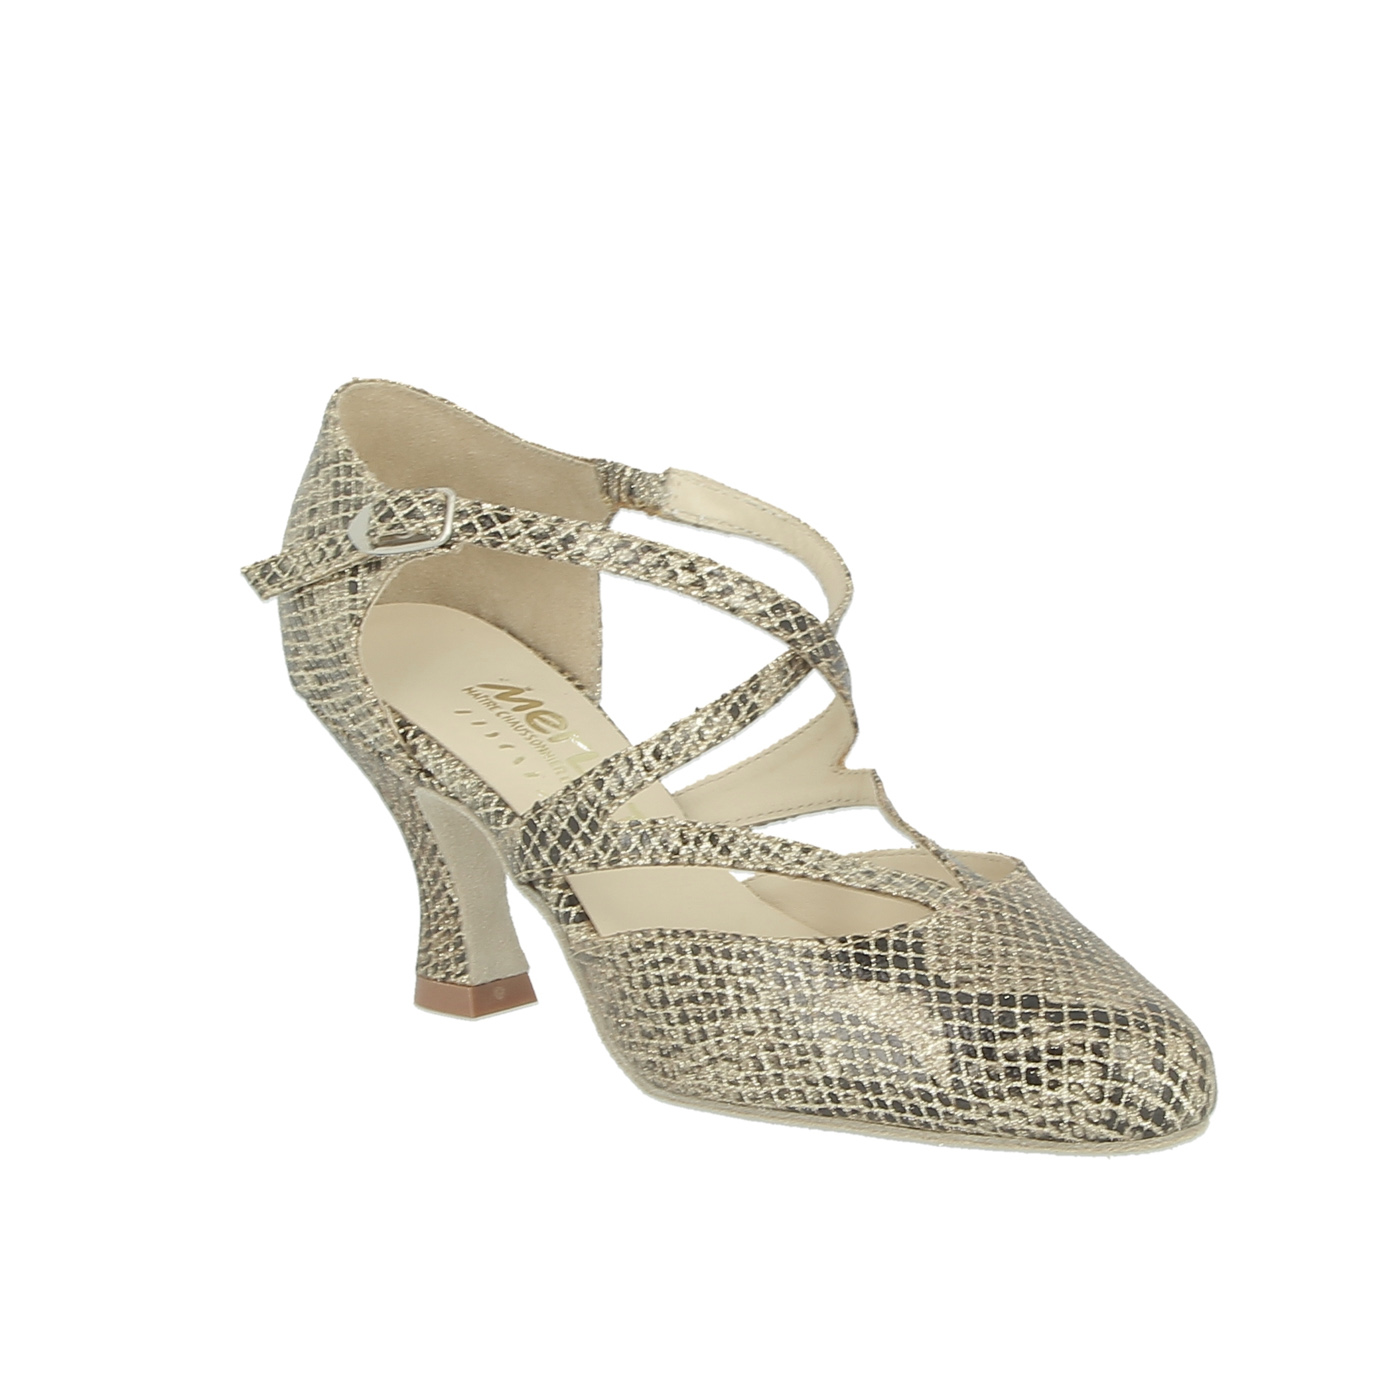 Merlet-chaussures-chanis1086 418